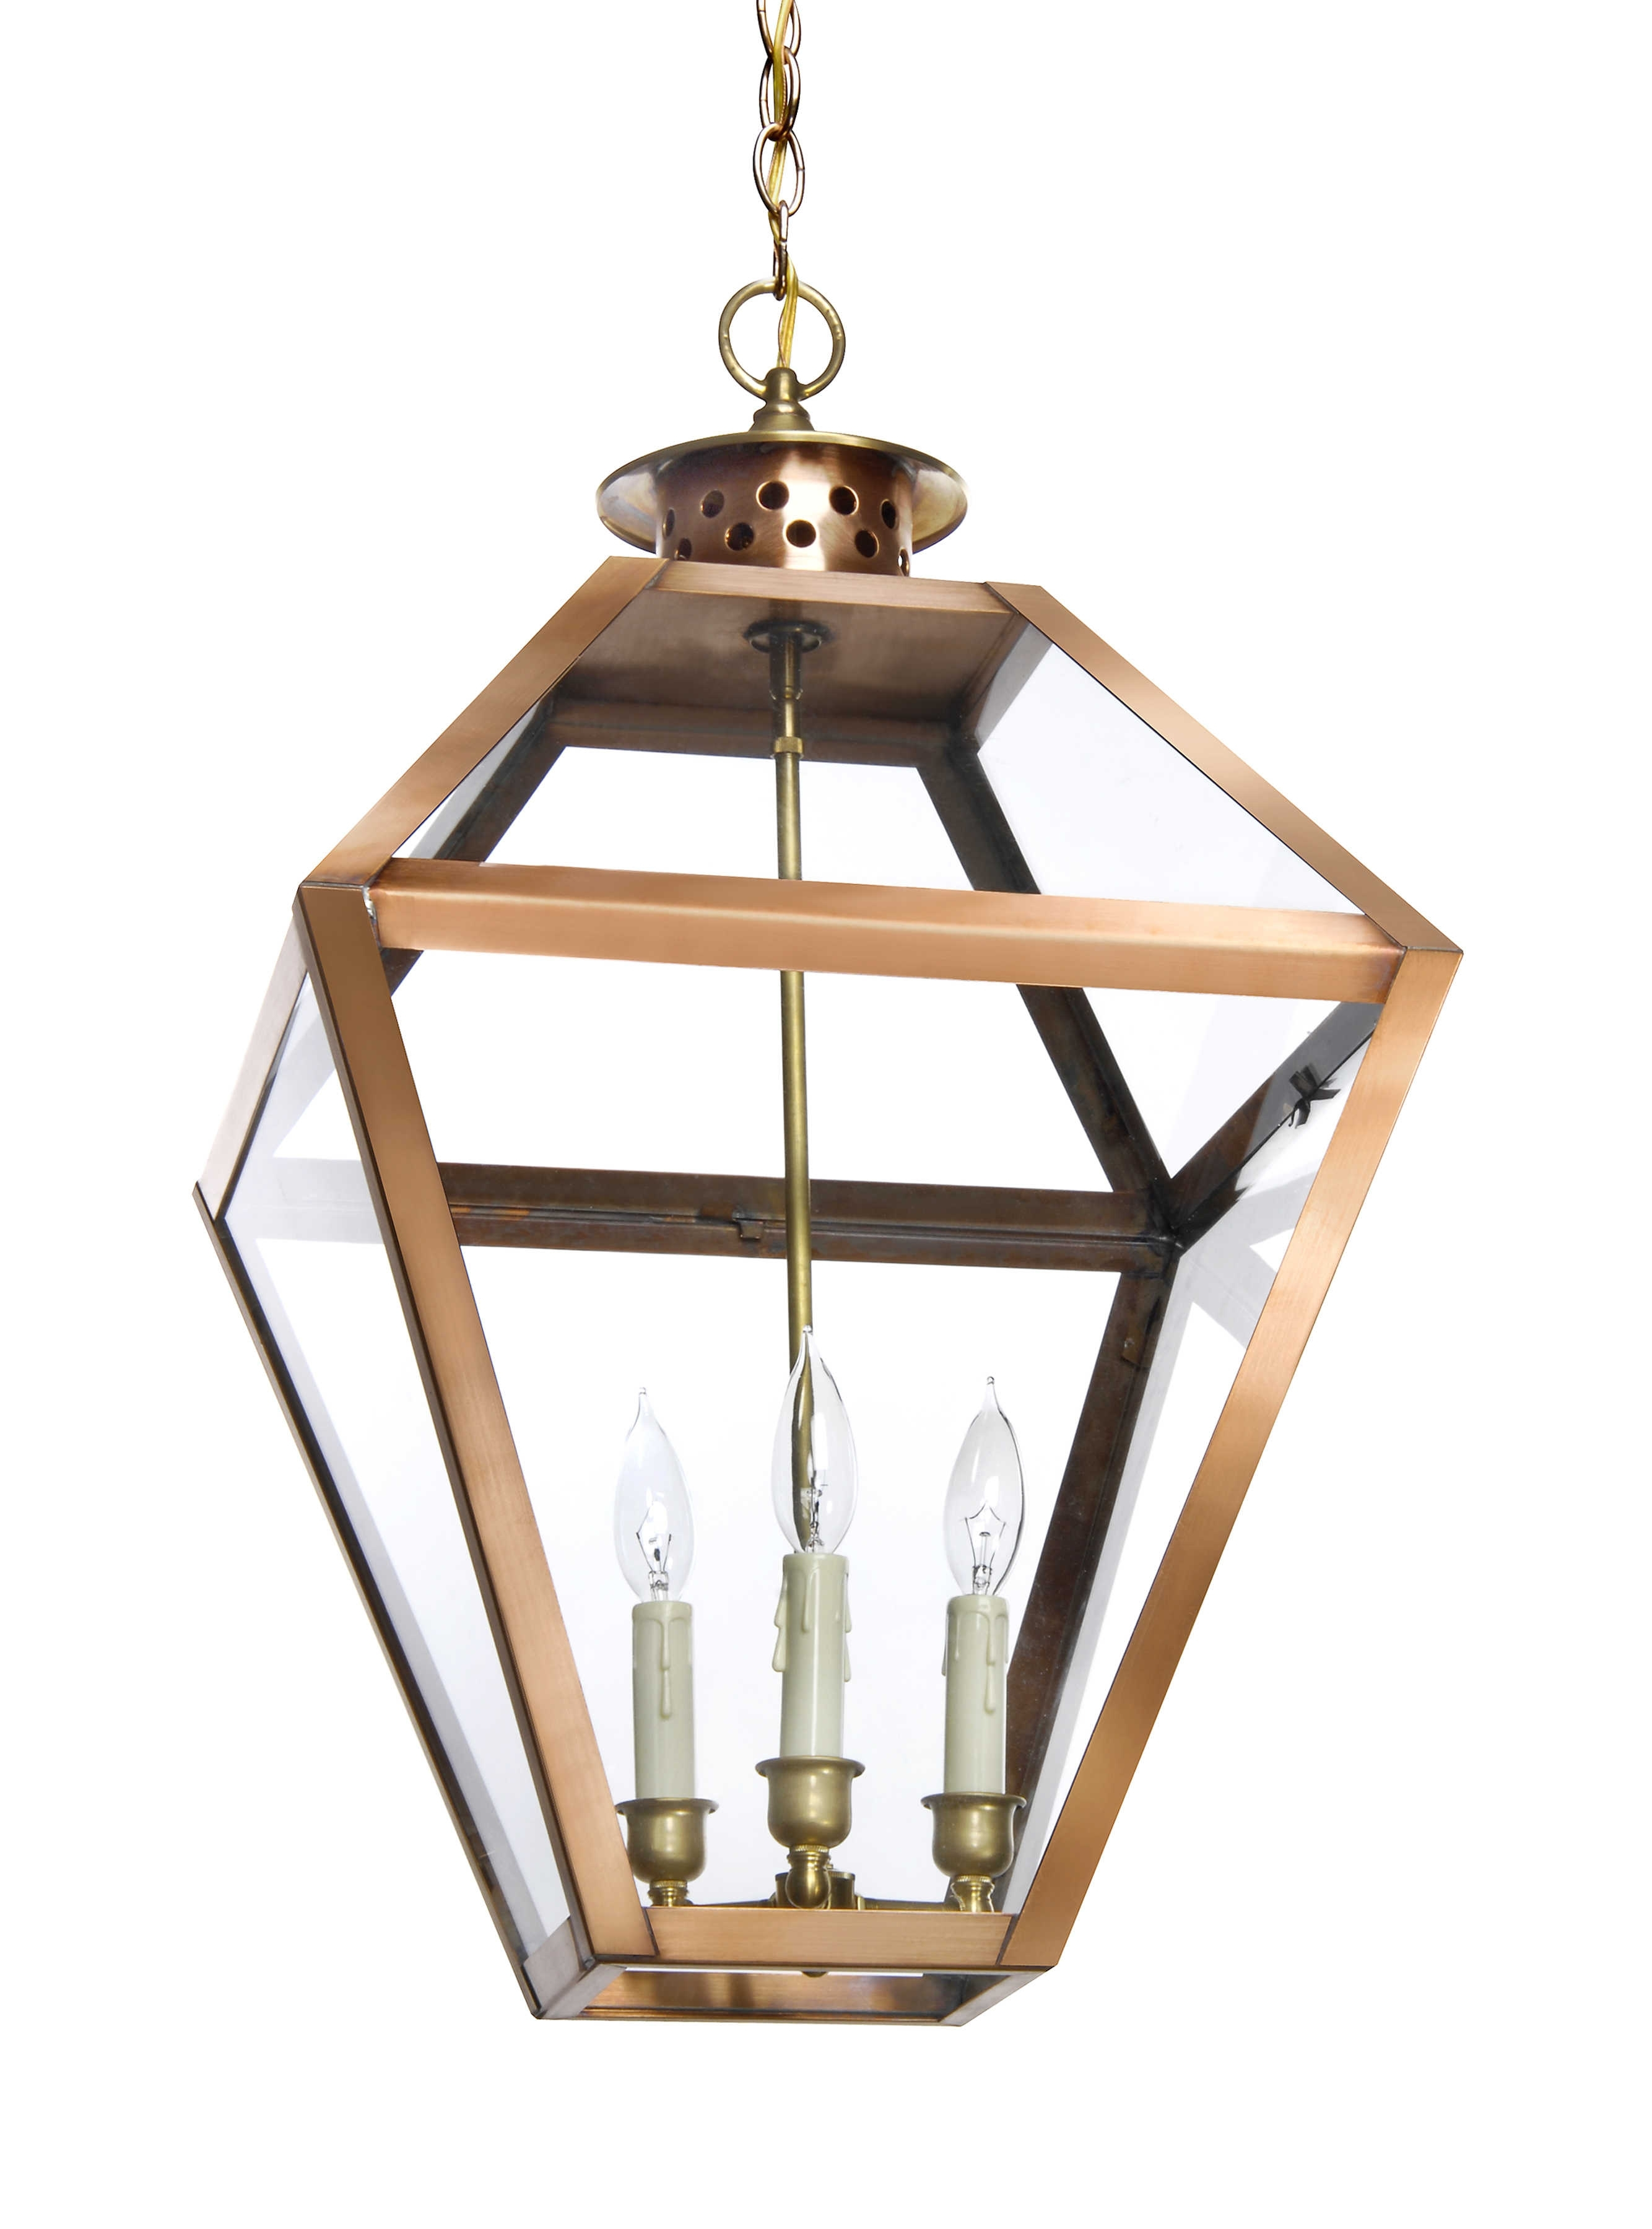 Outdoor Electric Lantern Lights - Outdoor Lighting Ideas inside Moroccan Outdoor Electric Lanterns (Image 14 of 20)